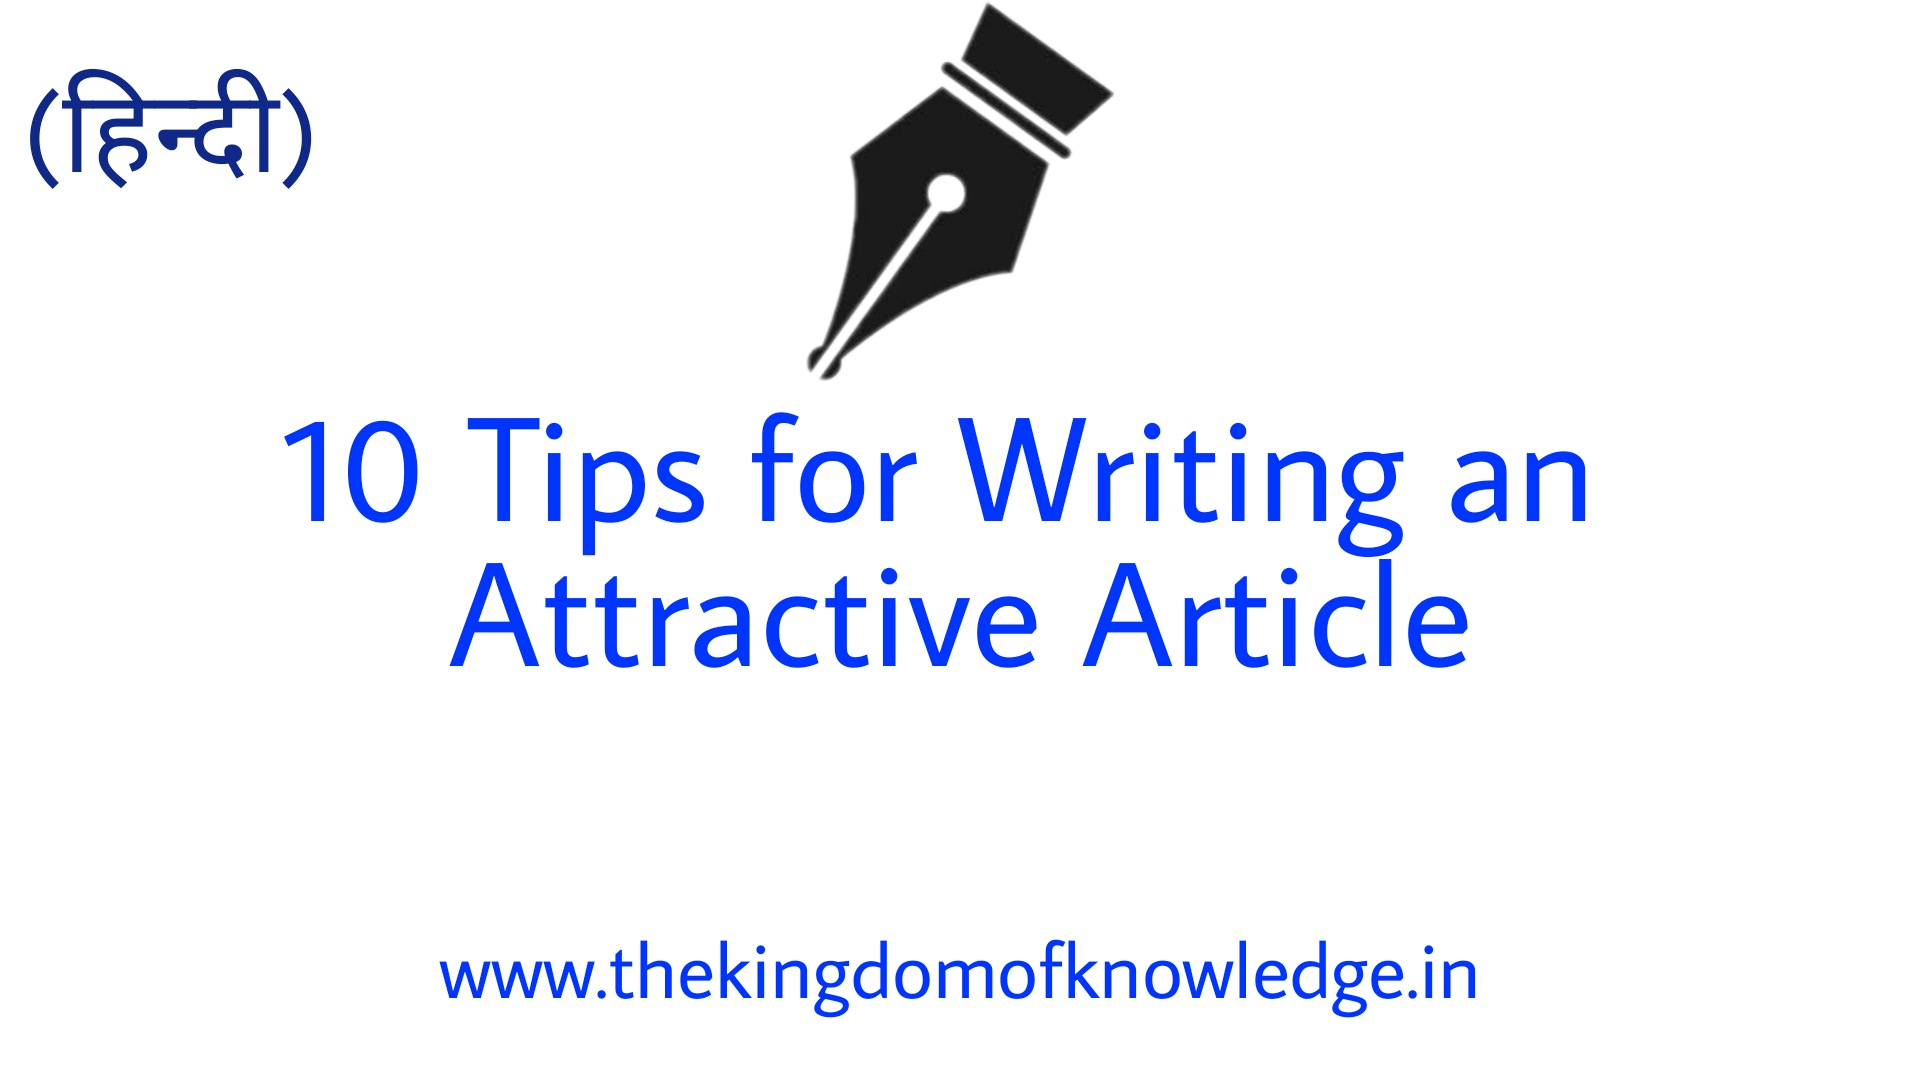 आकर्षित ARTICLE लिखने के लिए 10 TIPS | 10 Tips For Writing an Attractive Article